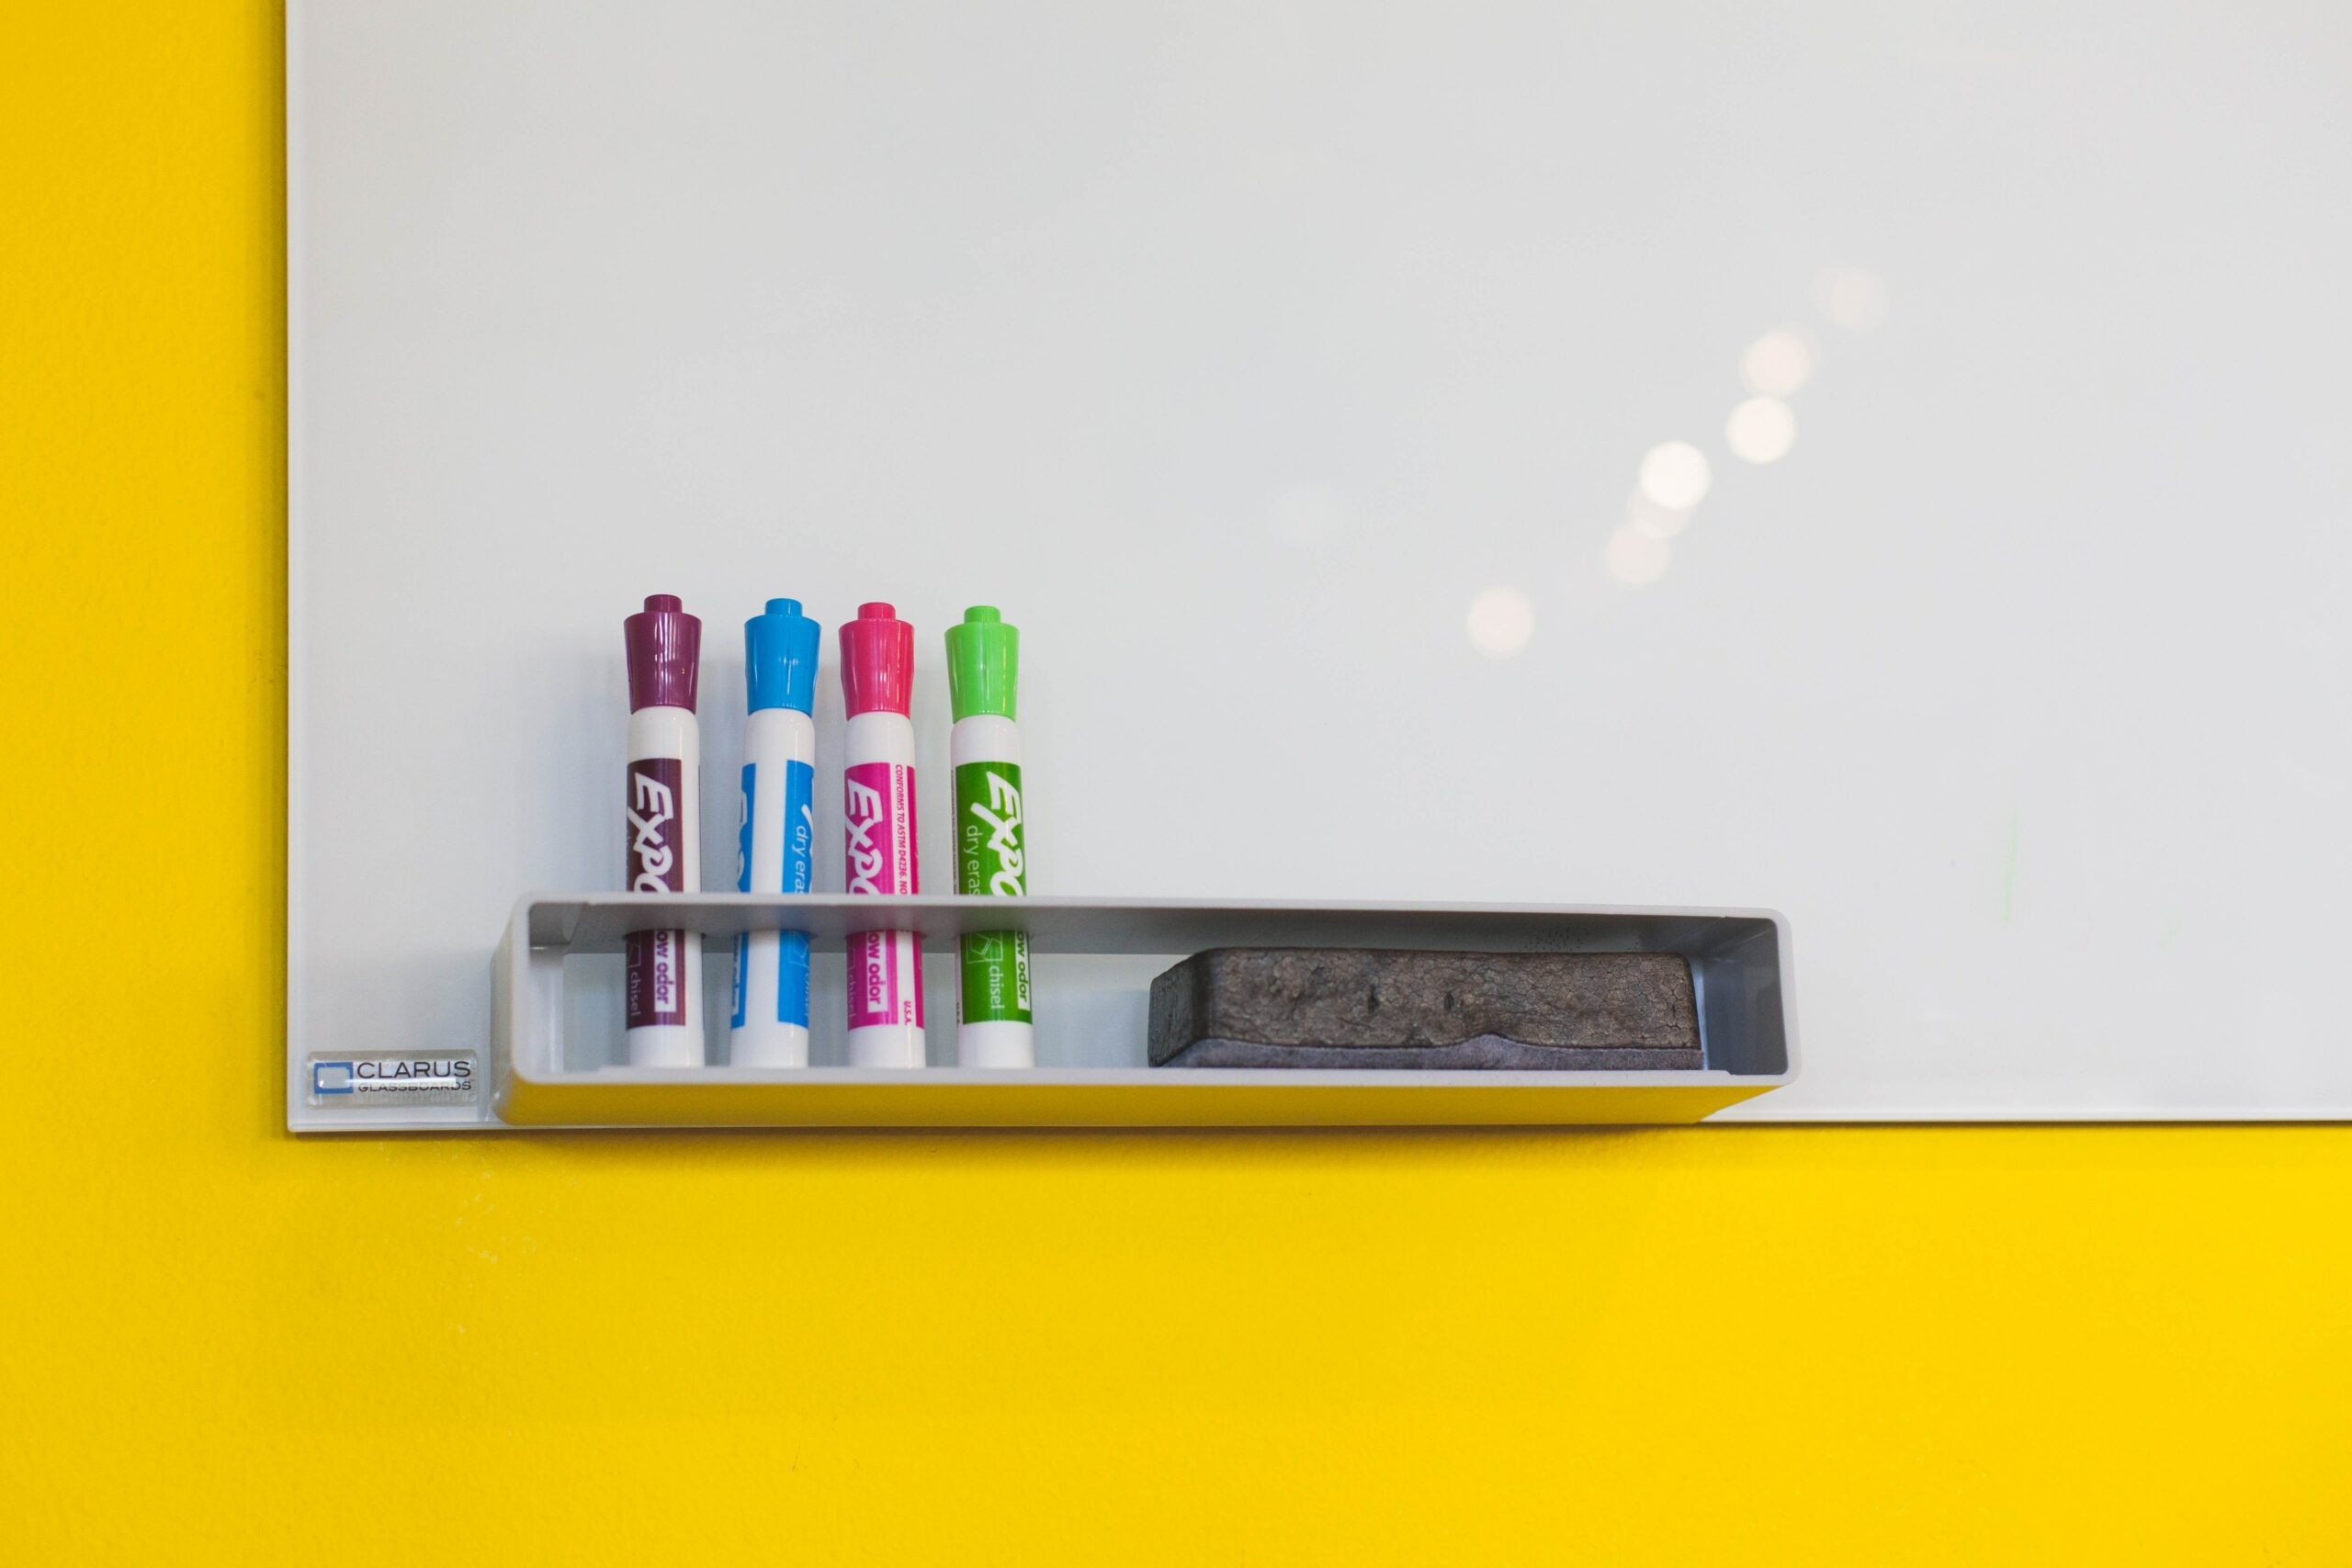 are there other uses for dry erase markers?